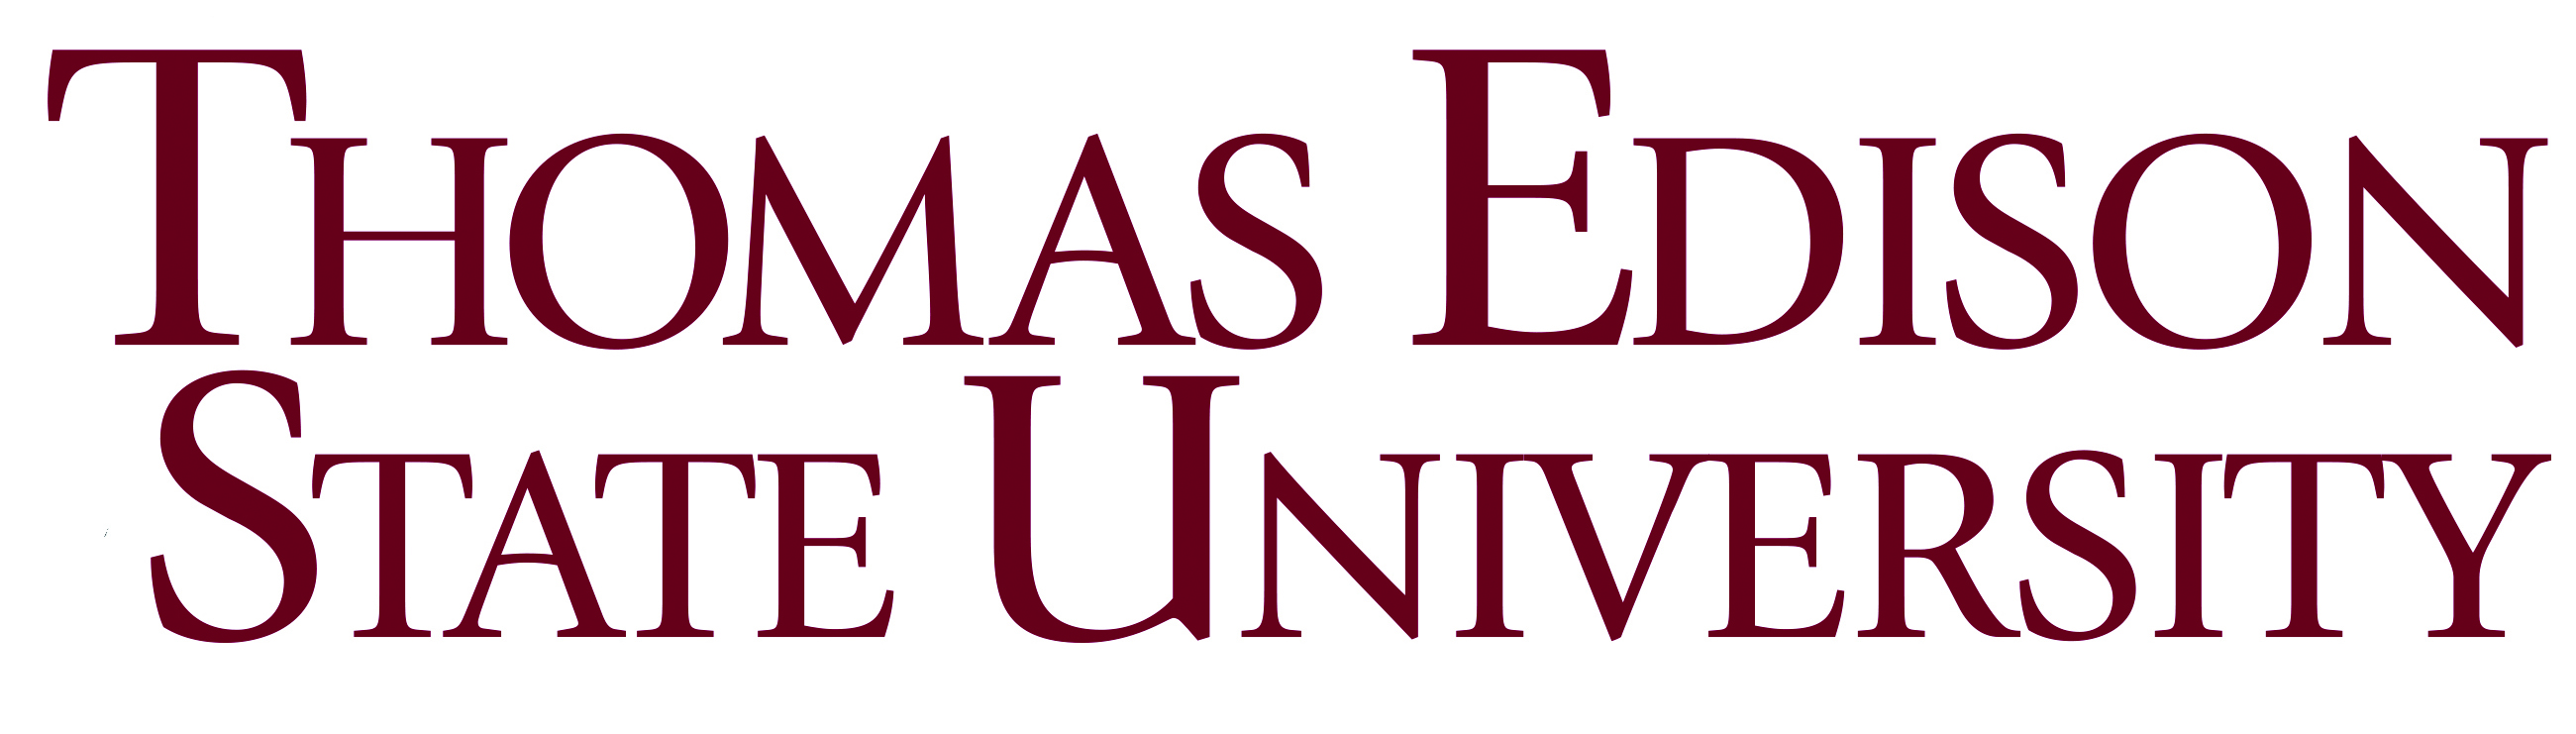 Thomas Edison State University is a sponsor of the ONL 2020 Annual Meeting